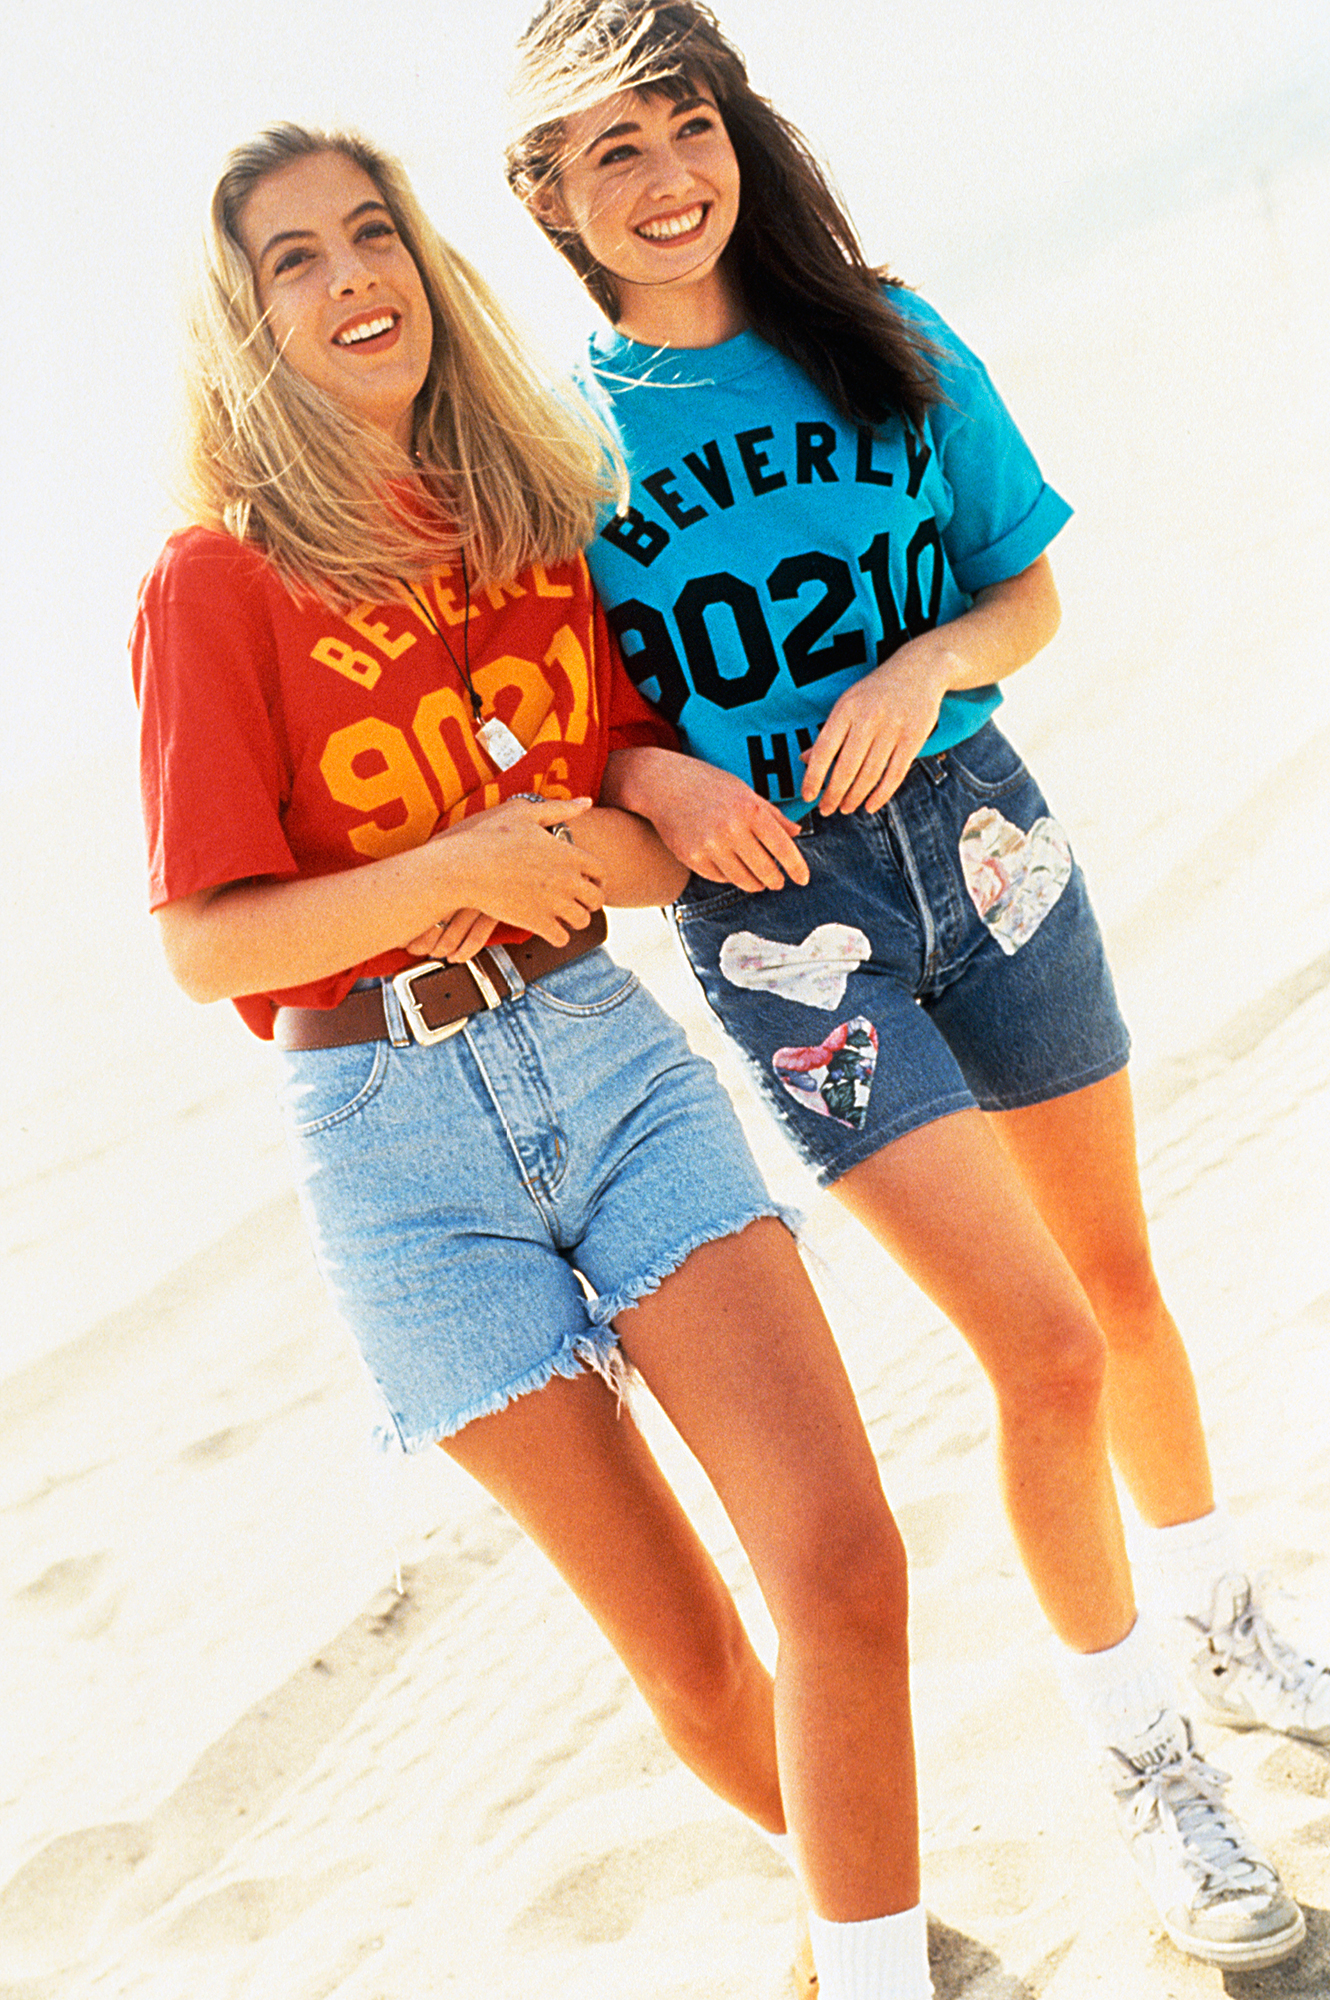 Tori-Spelling-Shannen-Doherty-90210 - Tori Spelling and Shannen Doherty on 90210